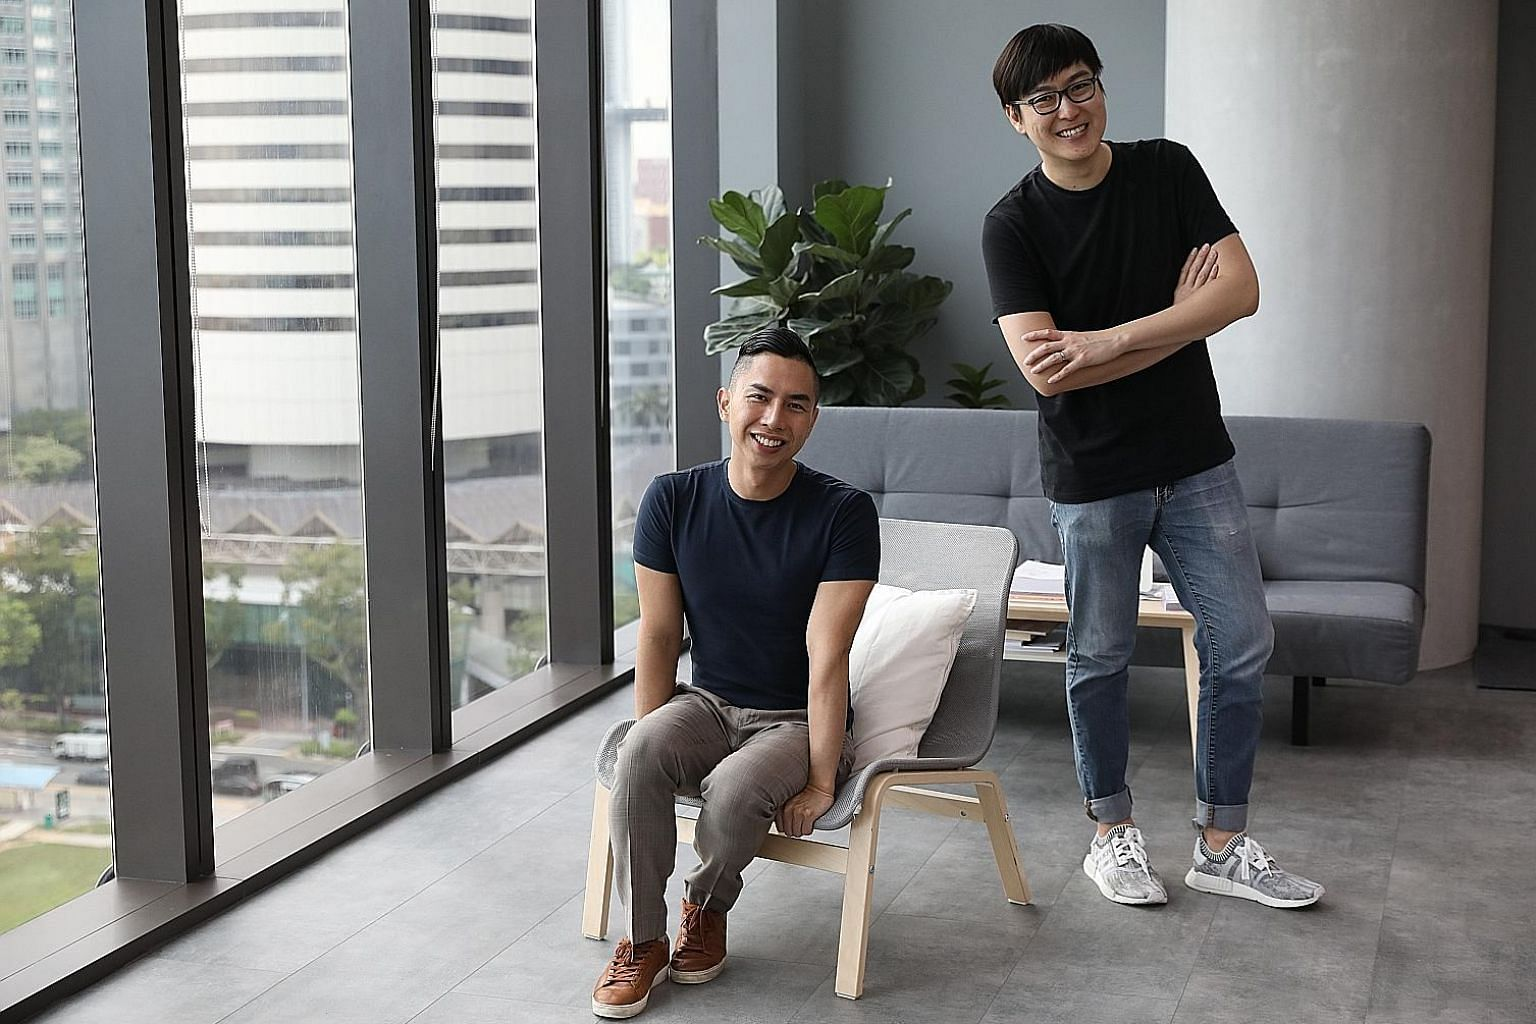 Teng Ensemble co-founders Samuel Wong (left) and Yang Ji Wei have invested in new equipment to shoot better content for online broadcast. The Singapore Symphony Orchestra (above) and Singapore Chinese Orchestra (left) are offering fresh as well as ar